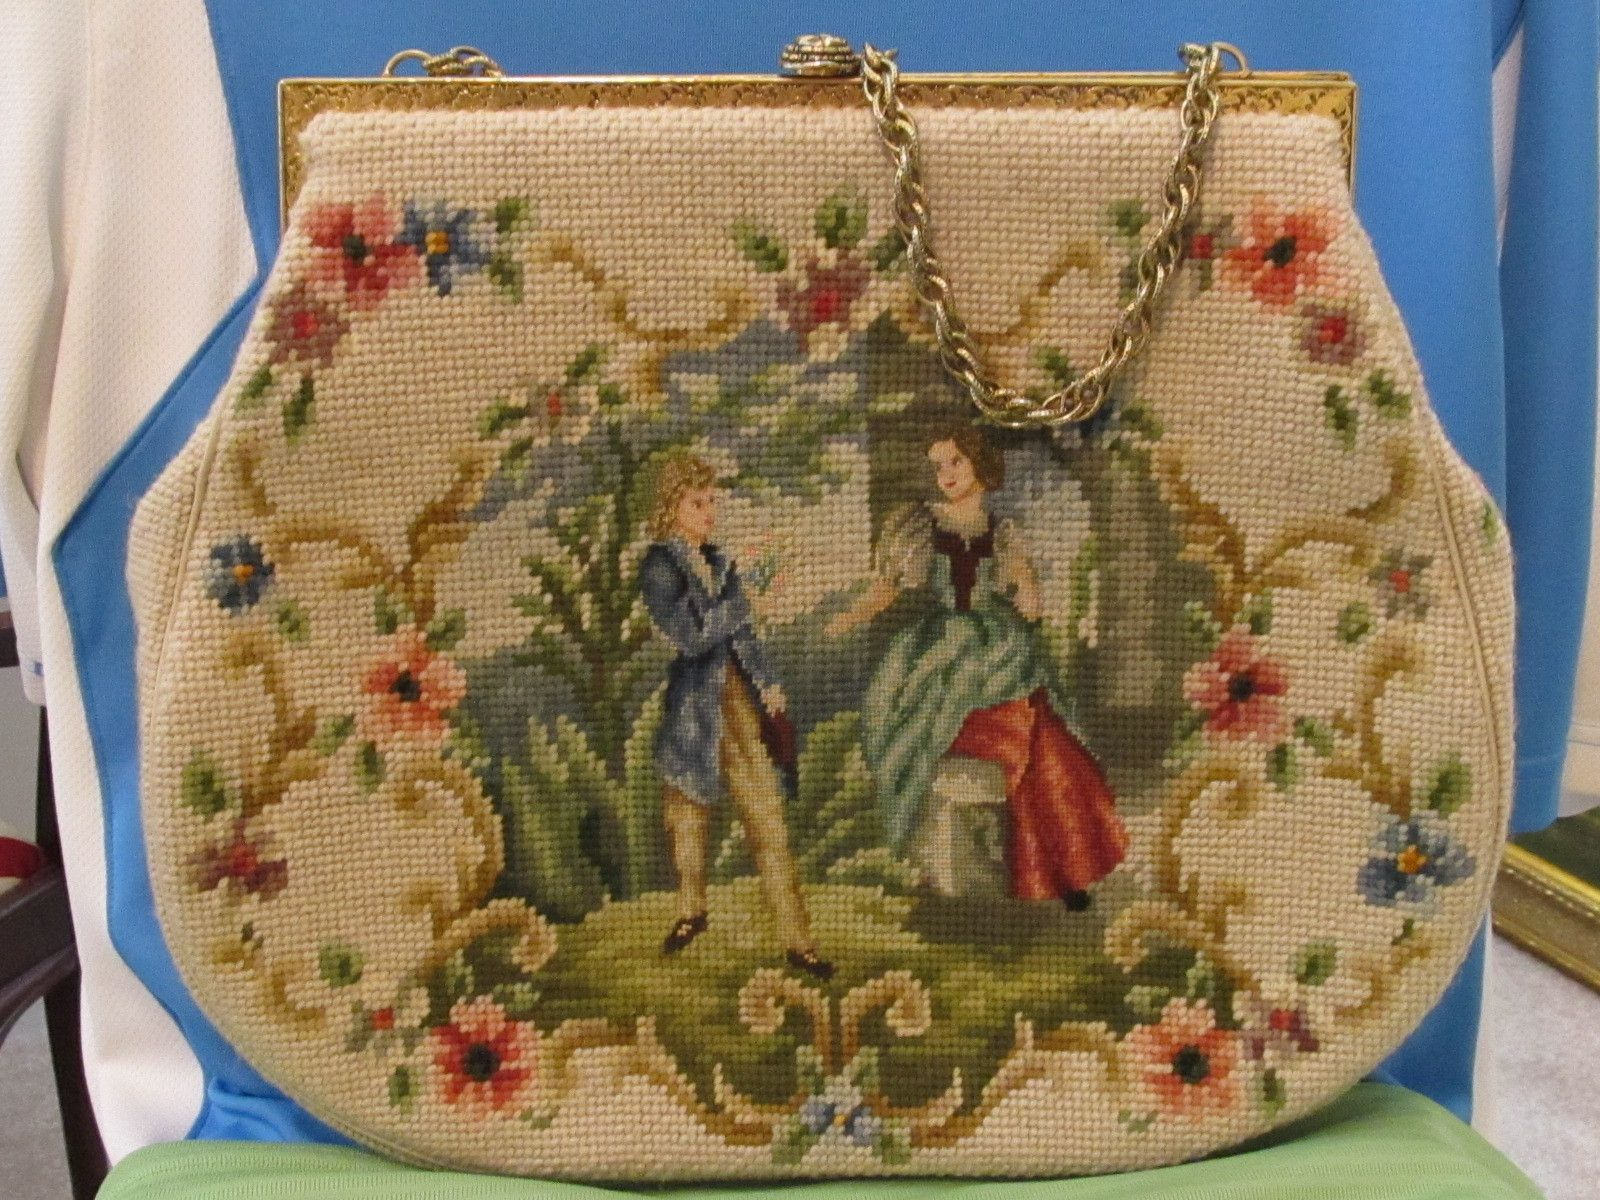 Needlepoint and Petitpoint Large Bag Gold Clasp Handle French by Kurt Chambre | eBay